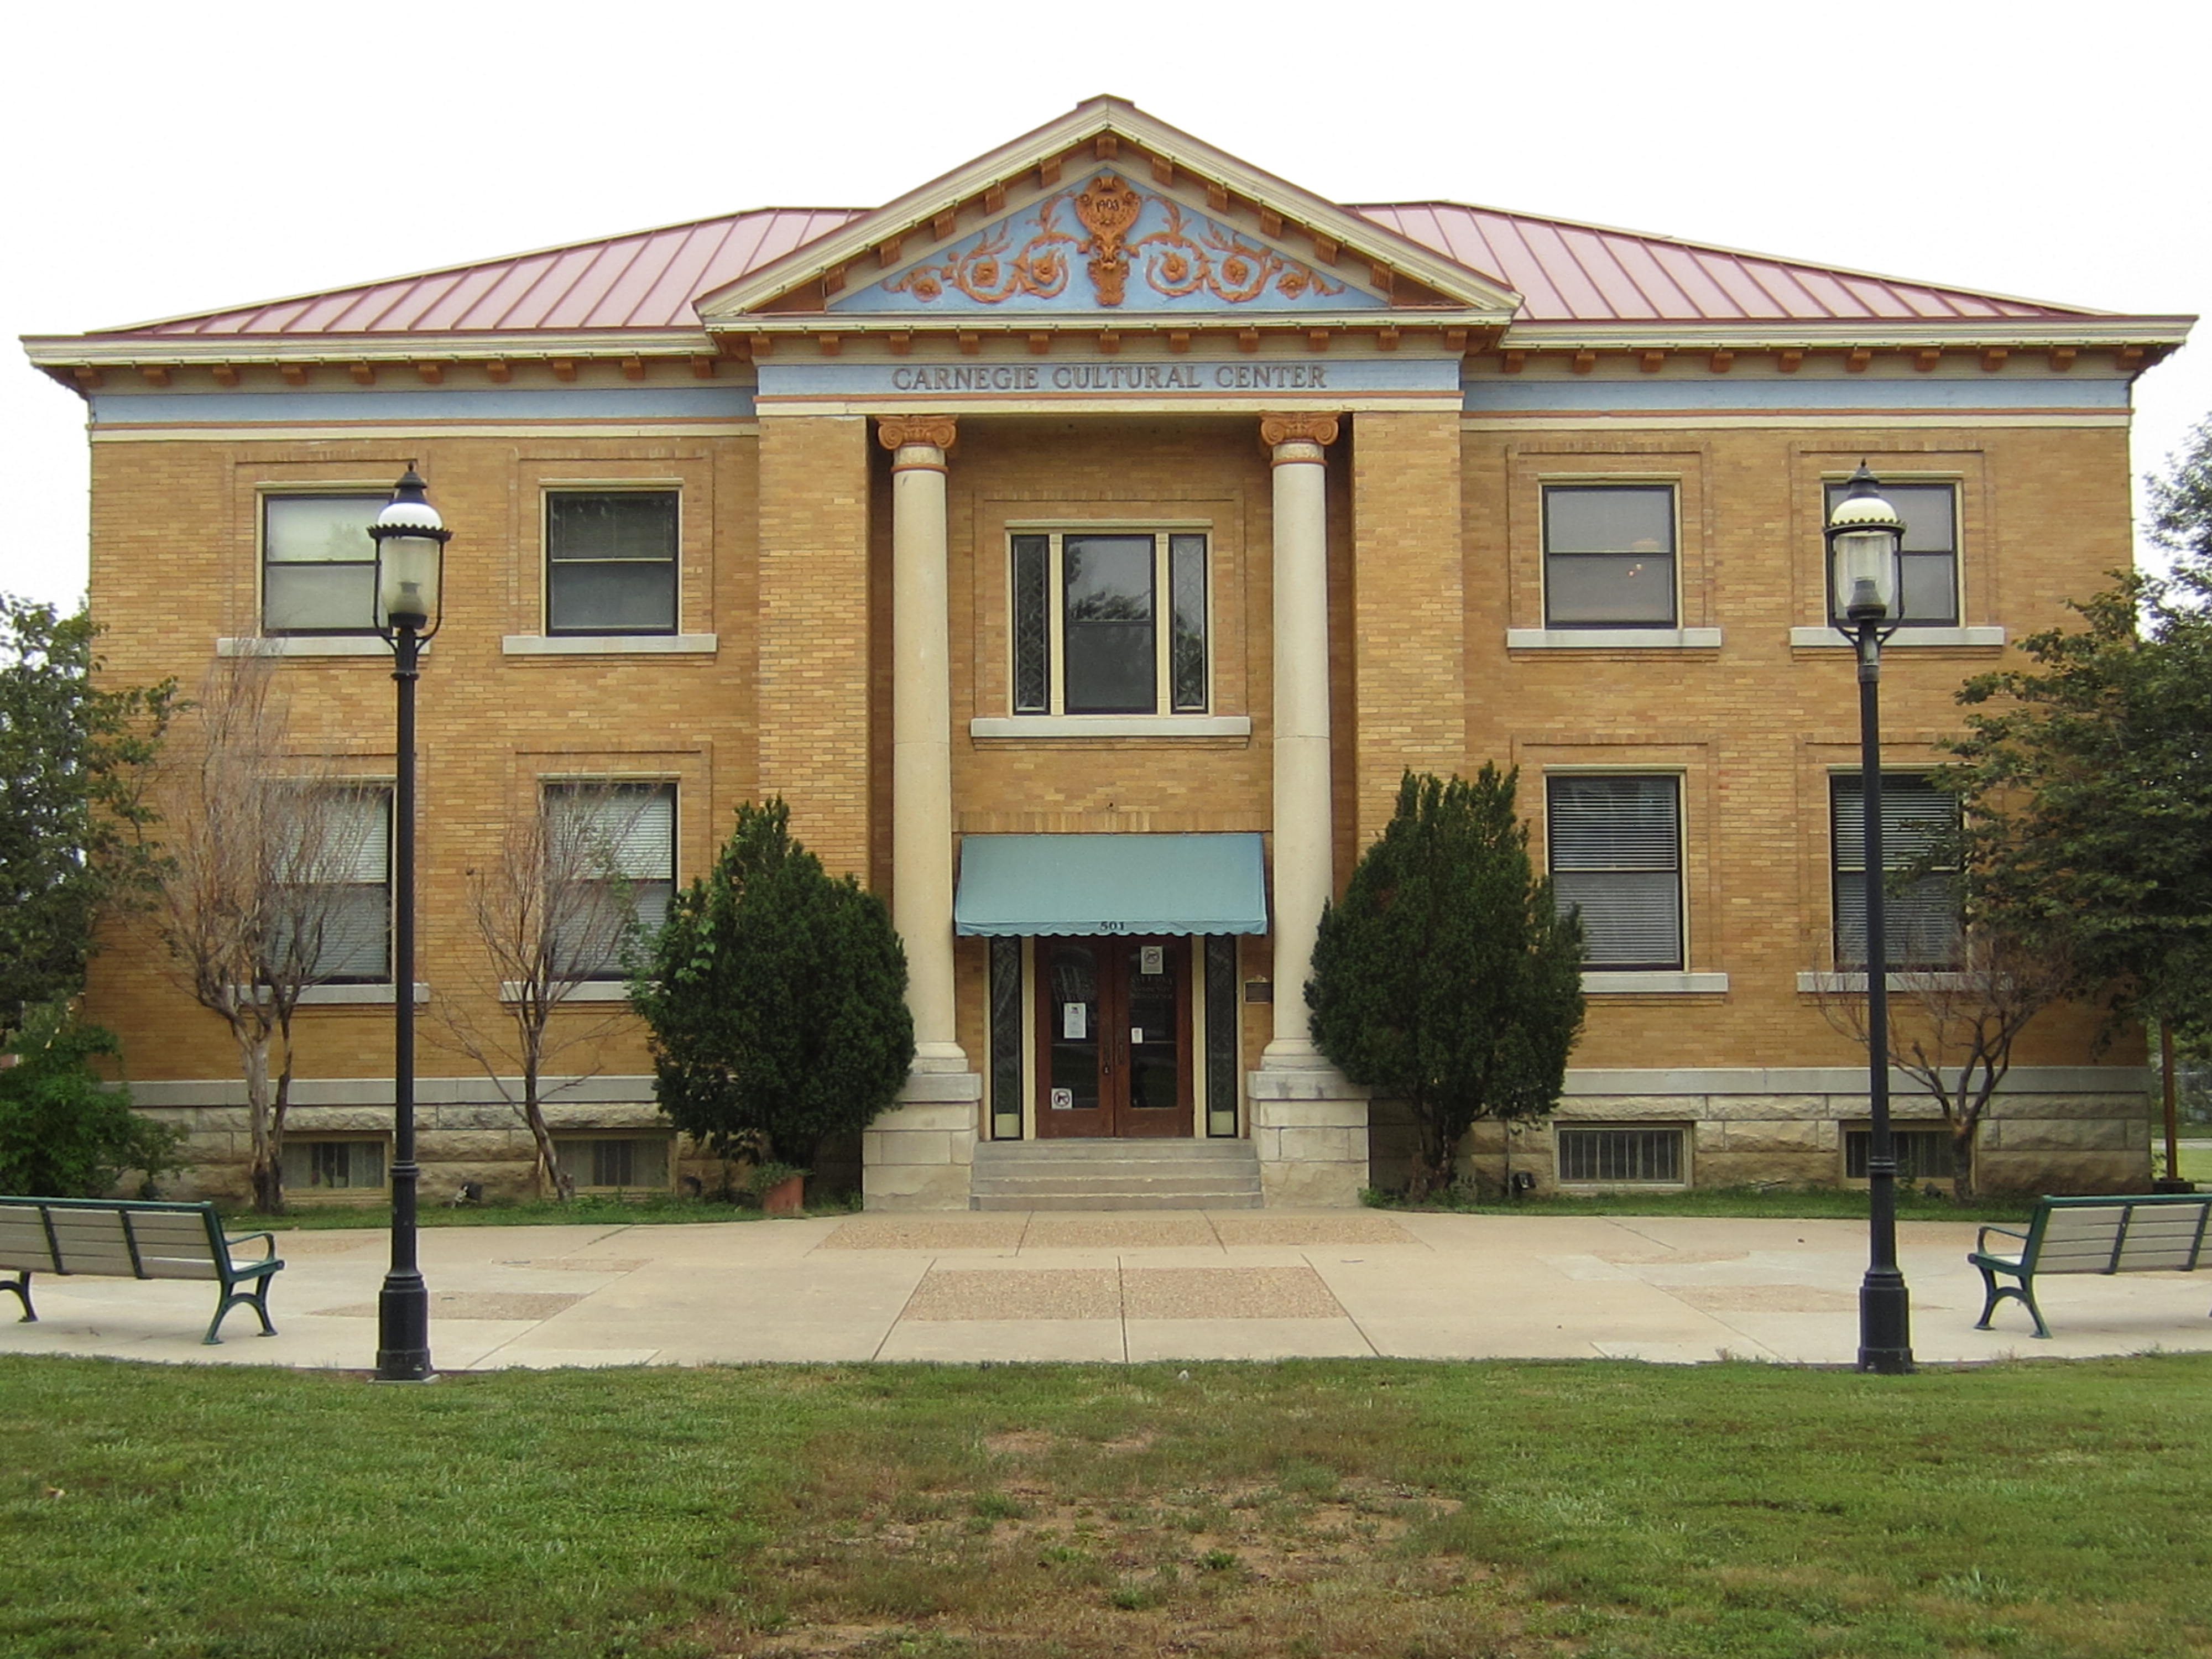 File:Ottawa, KS former public library building funded by